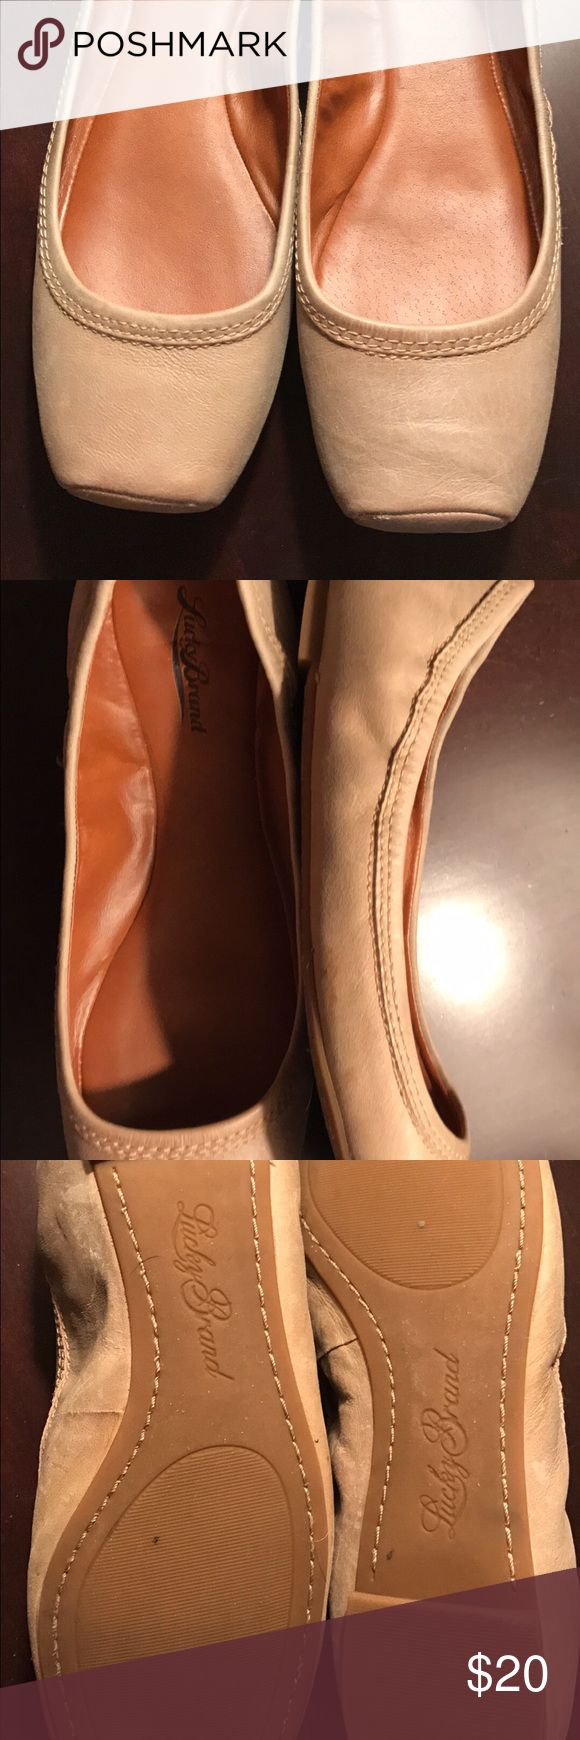 Lucky brand tan ballet flats Like new! Size 10 lucky brand ballet flats with square toe. Only worn three times. Lucky Brand Shoes Flats & Loafers